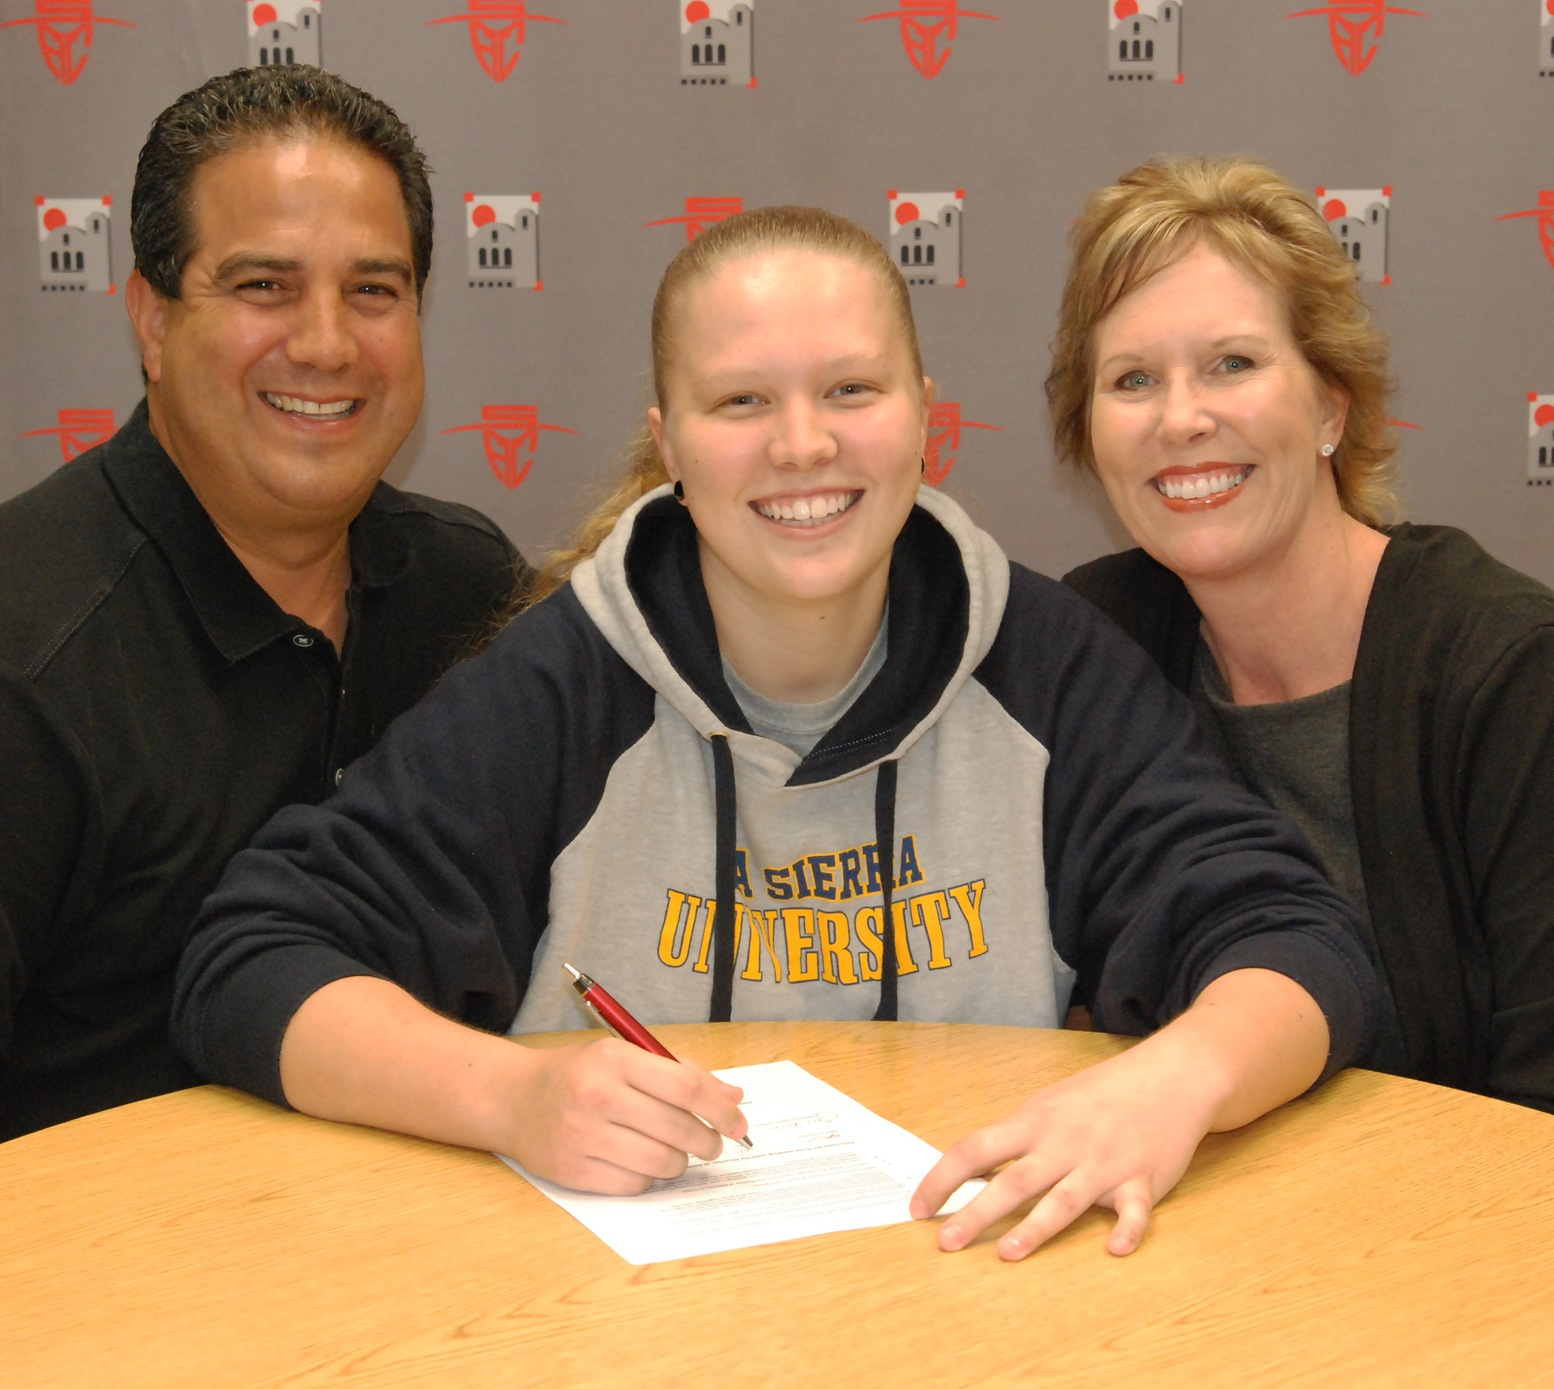 Taylor Ivicevic Signs With La Sierra